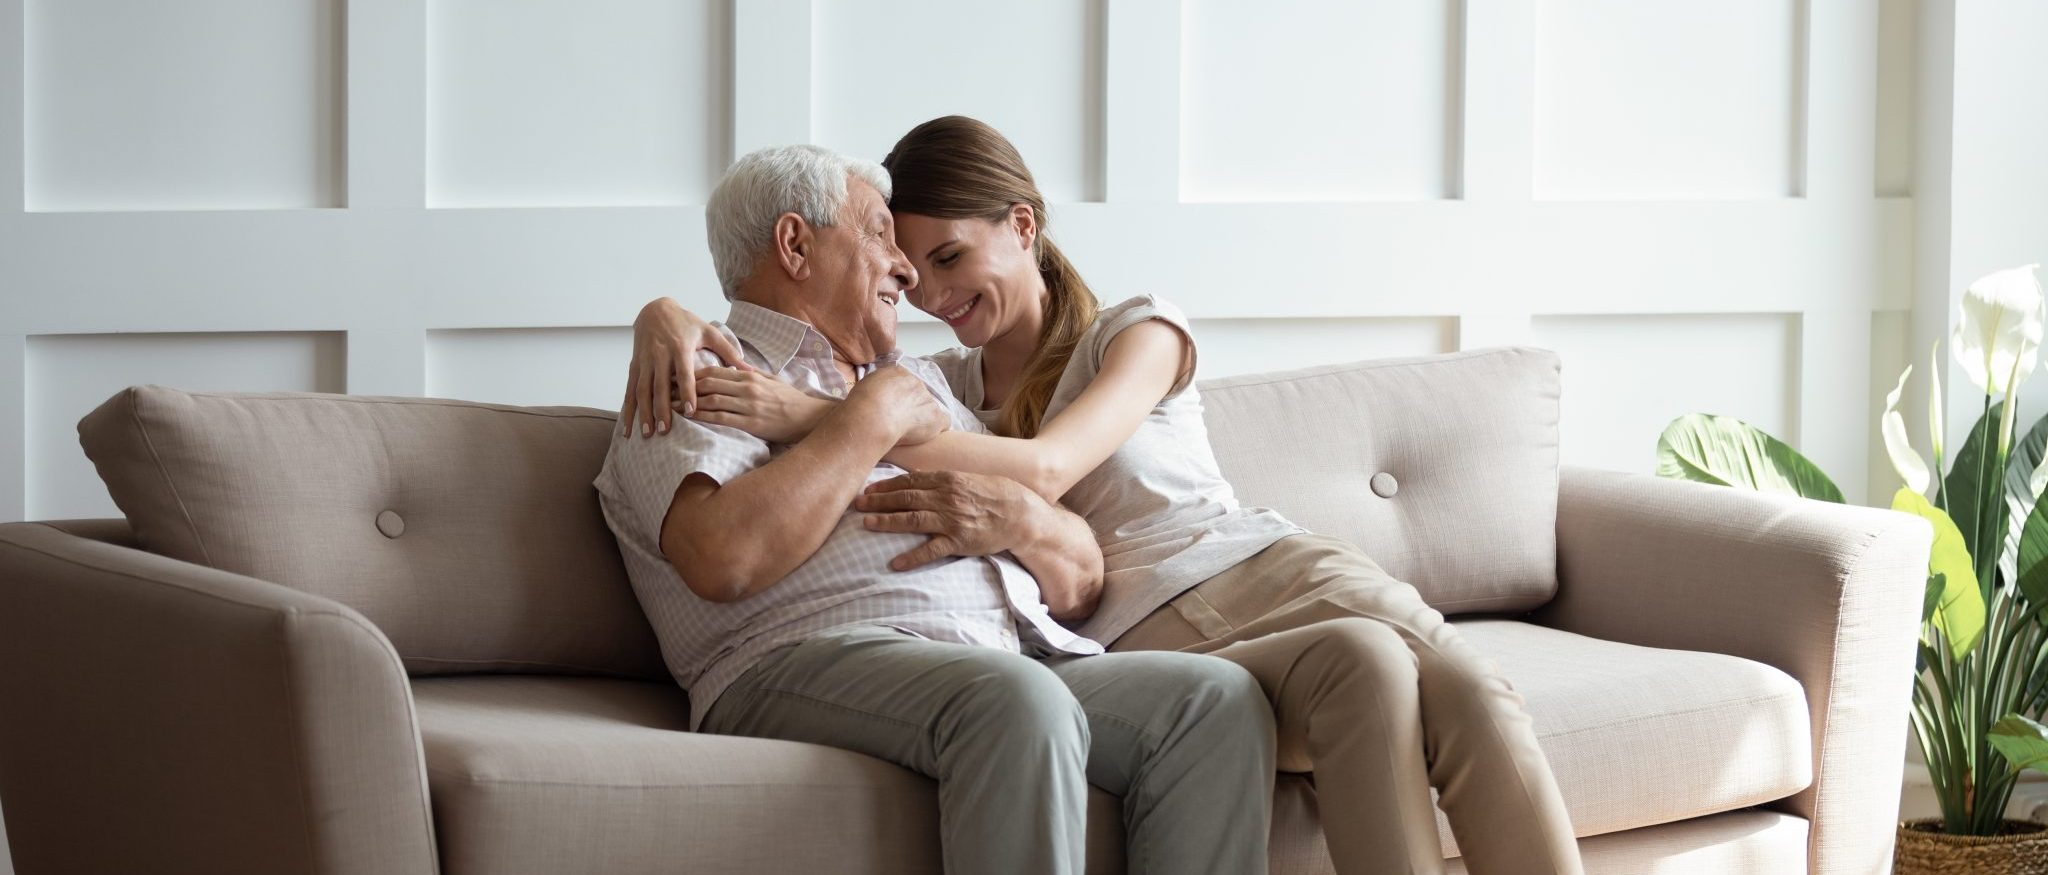 a daughter and her father embracing happily on a couch